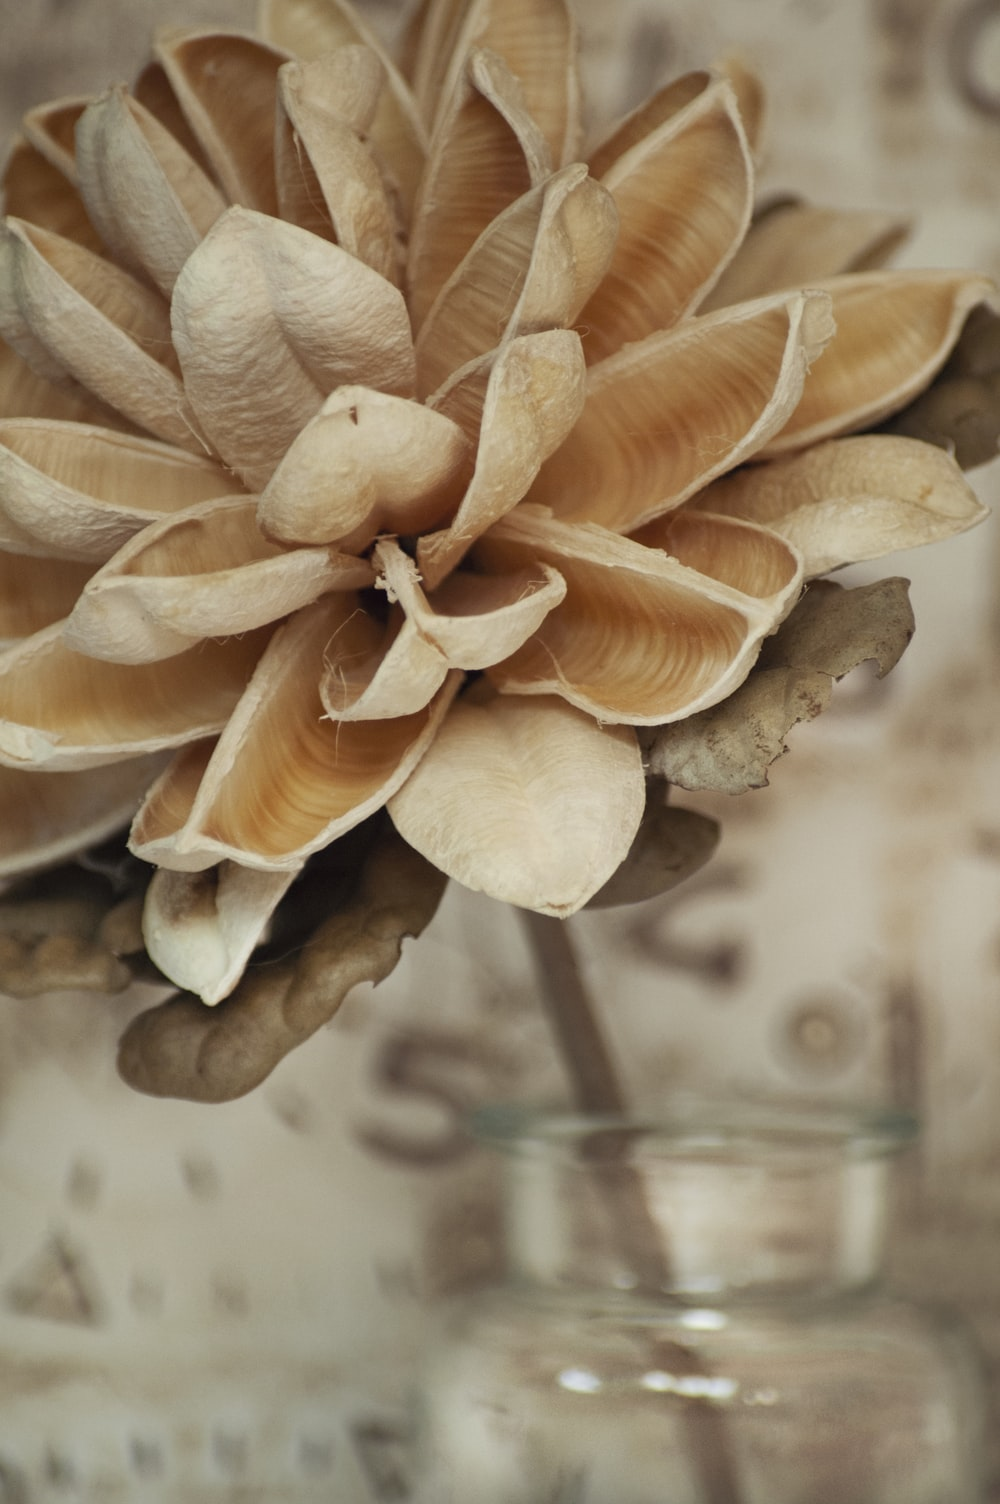 brown and white petaled flower close-up photography